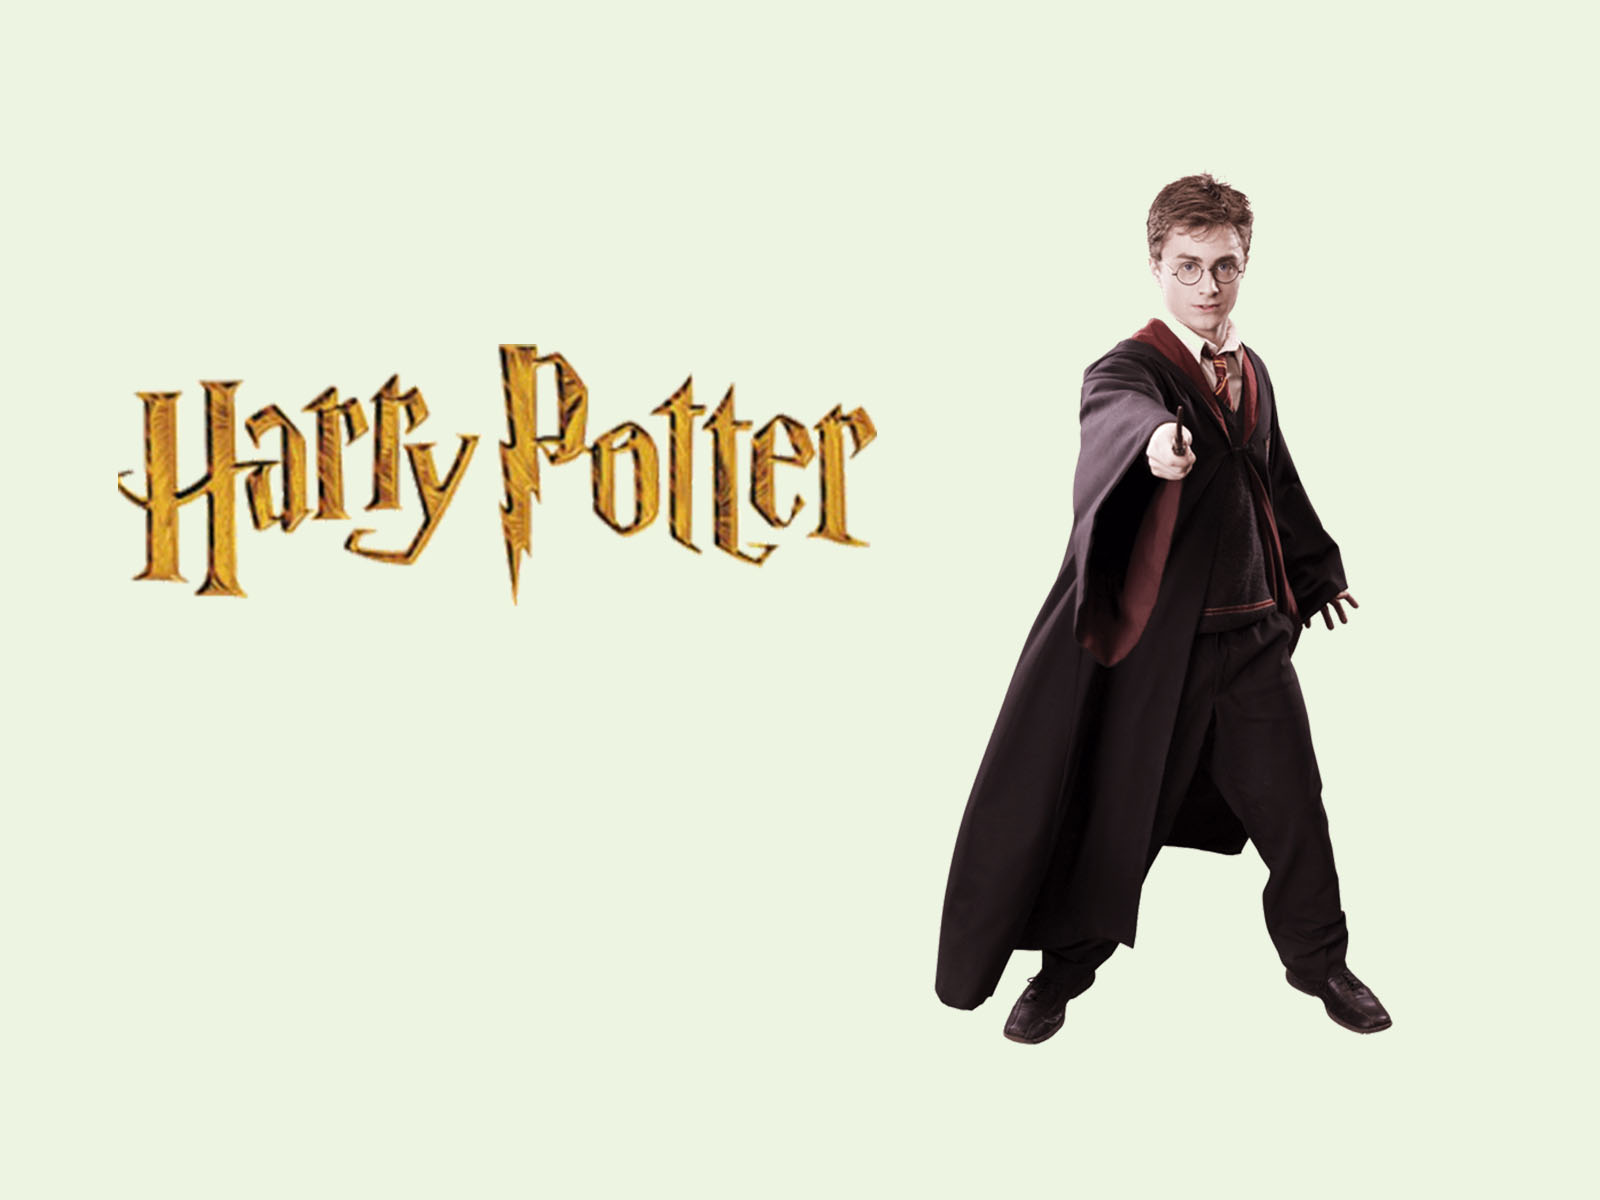 Harry Potter Tv Series Backgrounds Movie Tv Templates